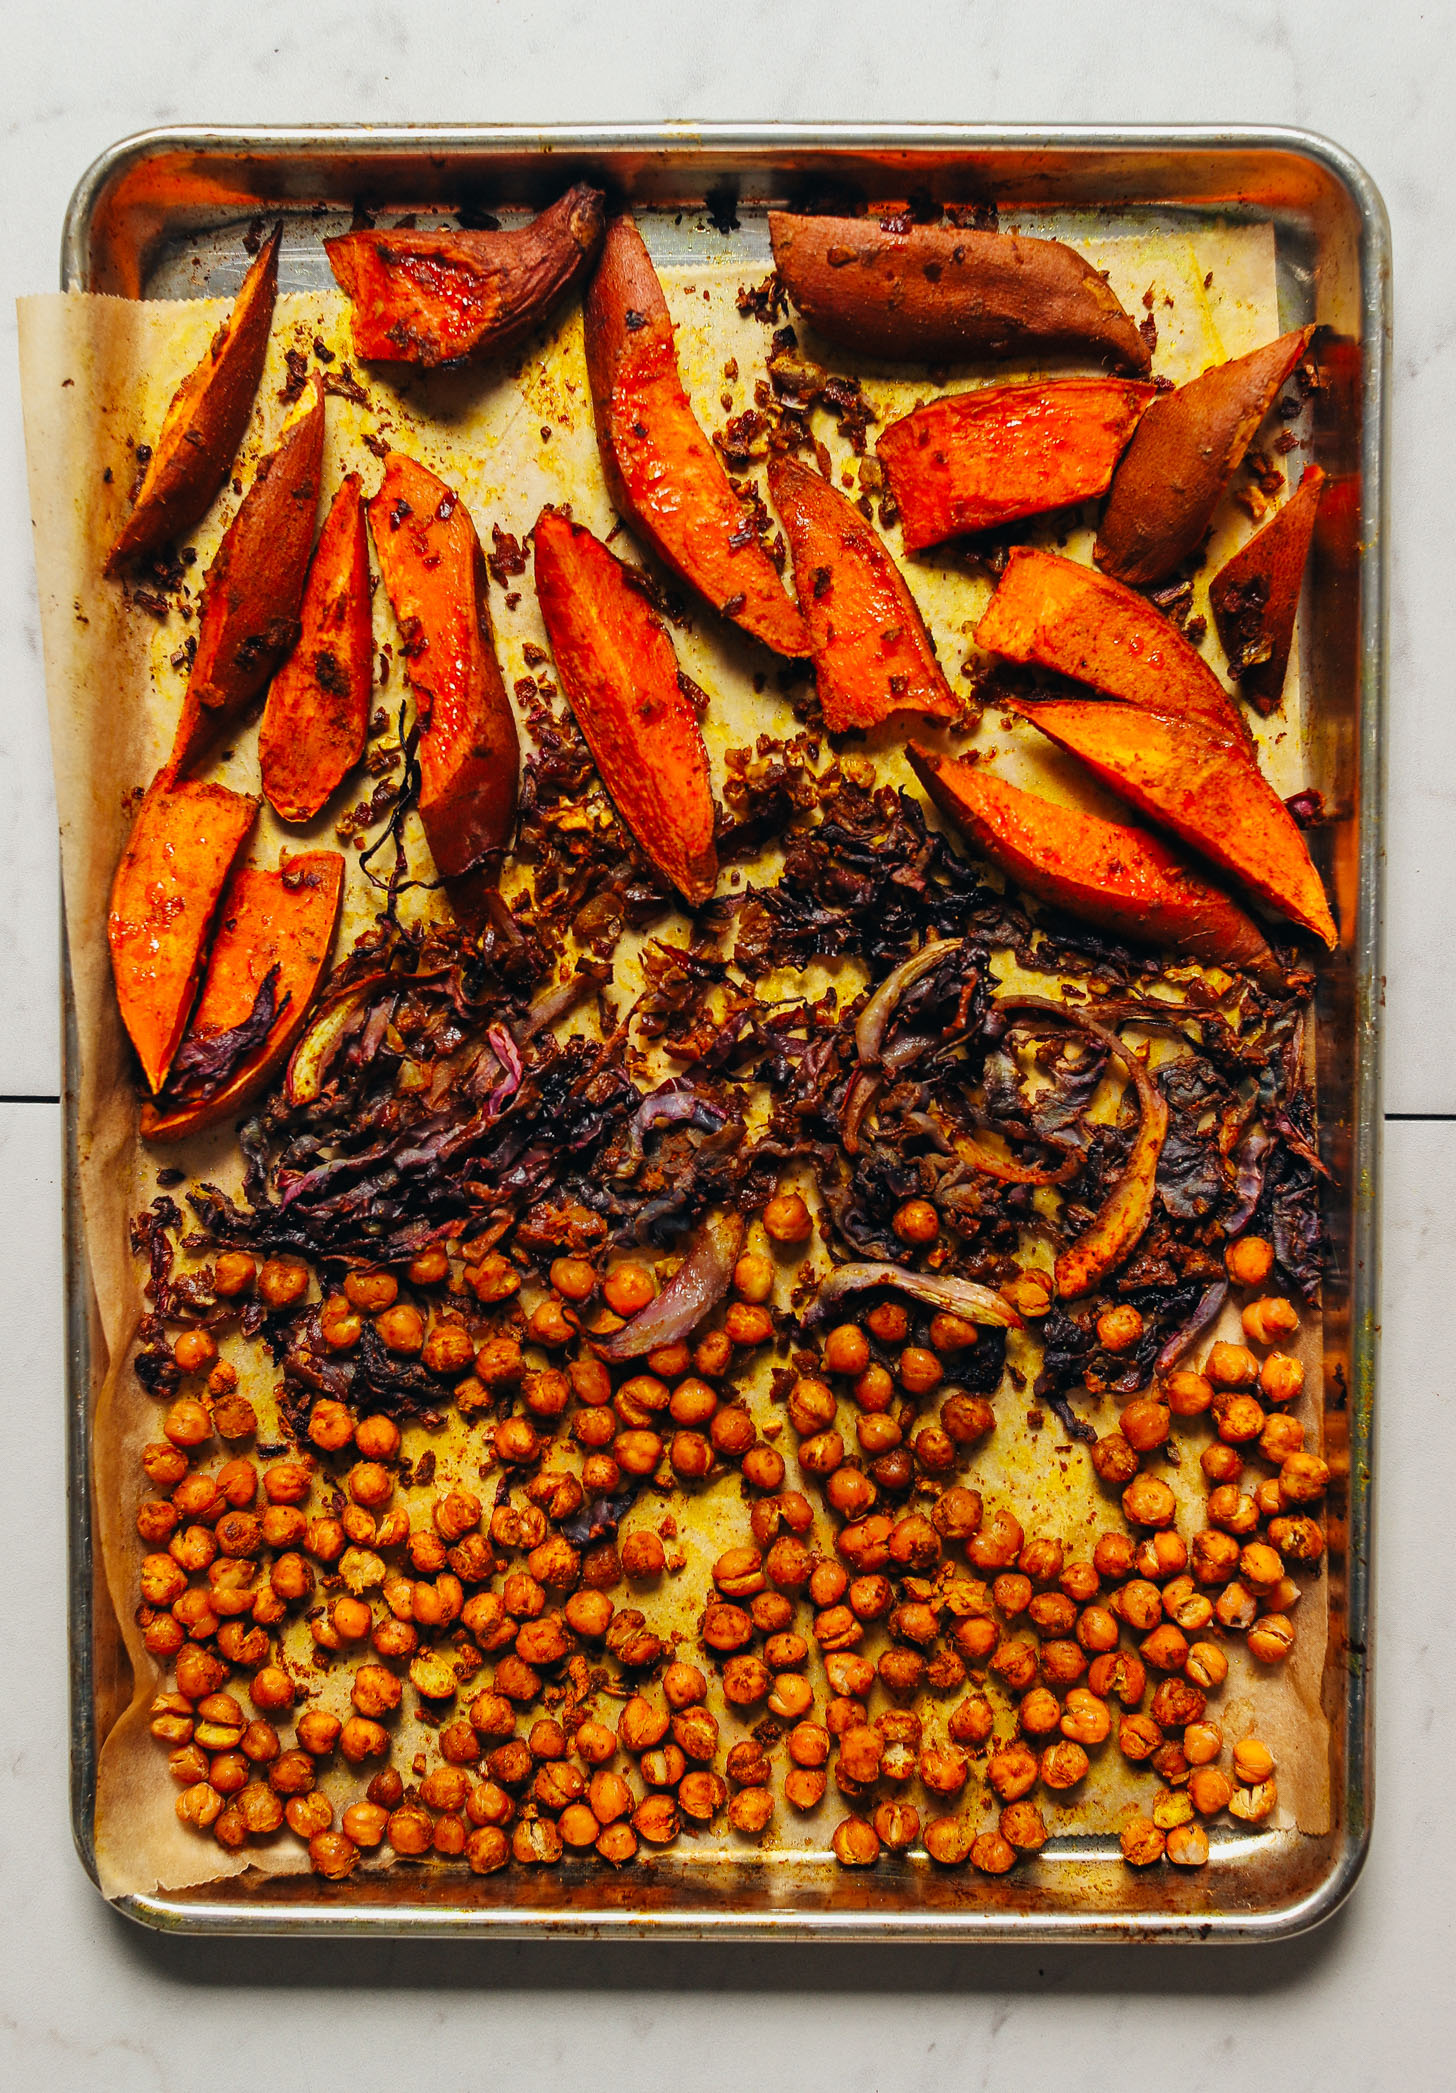 Baking sheet filled with freshly roasted cabbage, chickpeas, and sweet potatoes for a simple vegan Sheet Pan Dinner